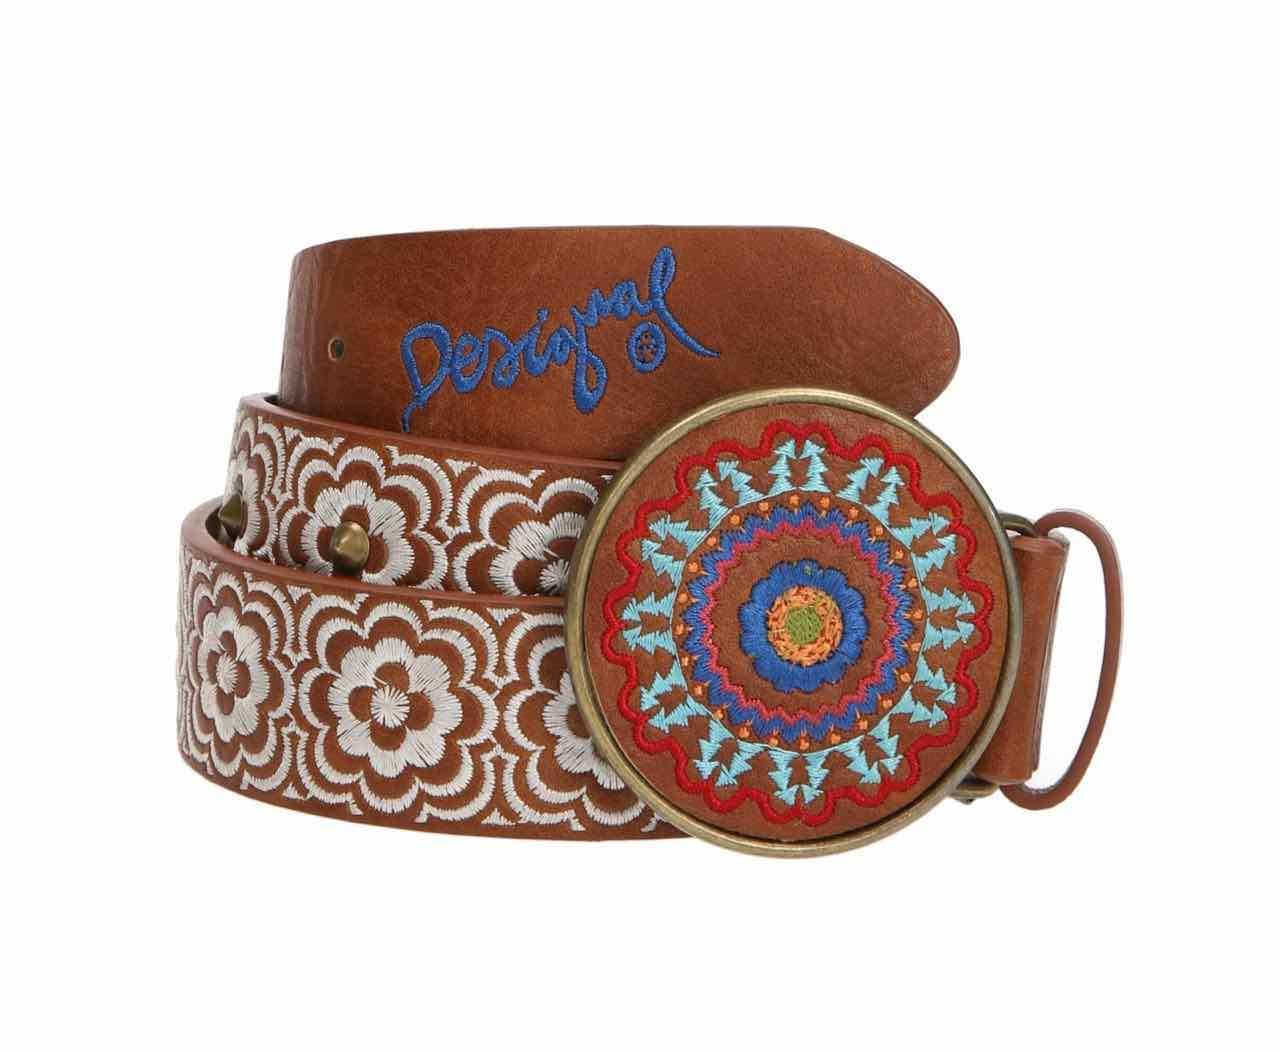 61R56M9_6000 Desigual Belt Chapon Bordado Geo Marron Brown